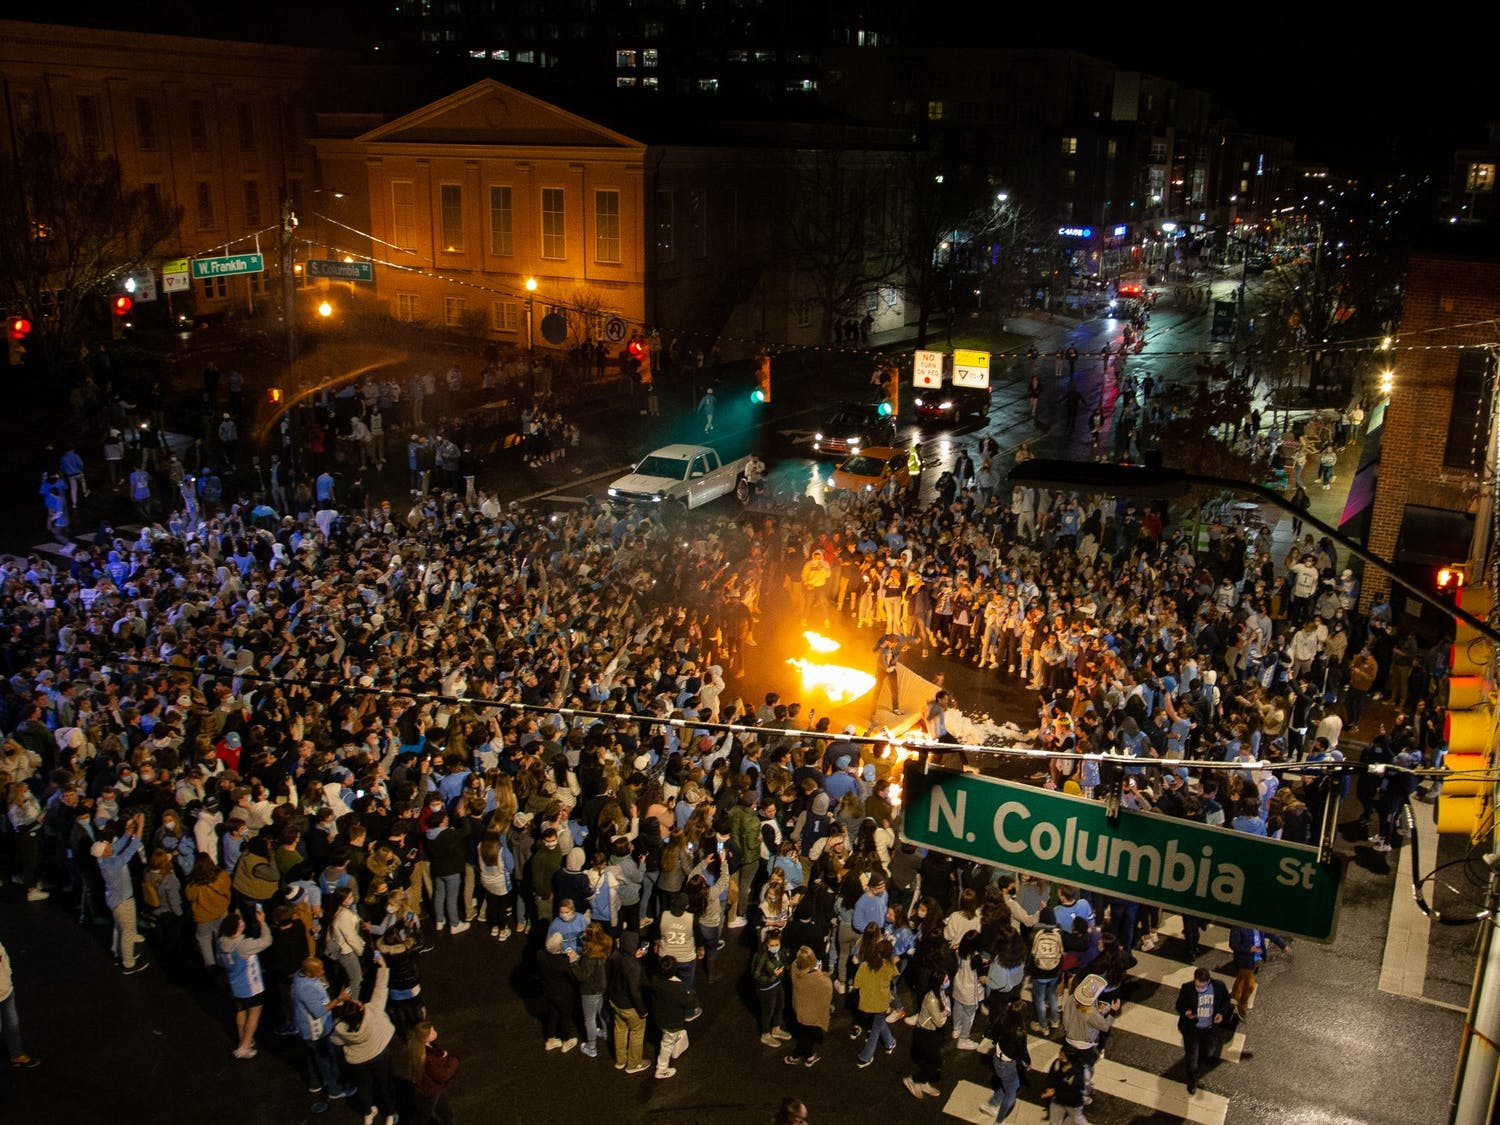 UNC fans rush Franklin Street  and light a mattress on fire after UNC's basketball team triumphs over Duke despite COVID-19 restrictions on Saturday, Feb. 6, 2021.